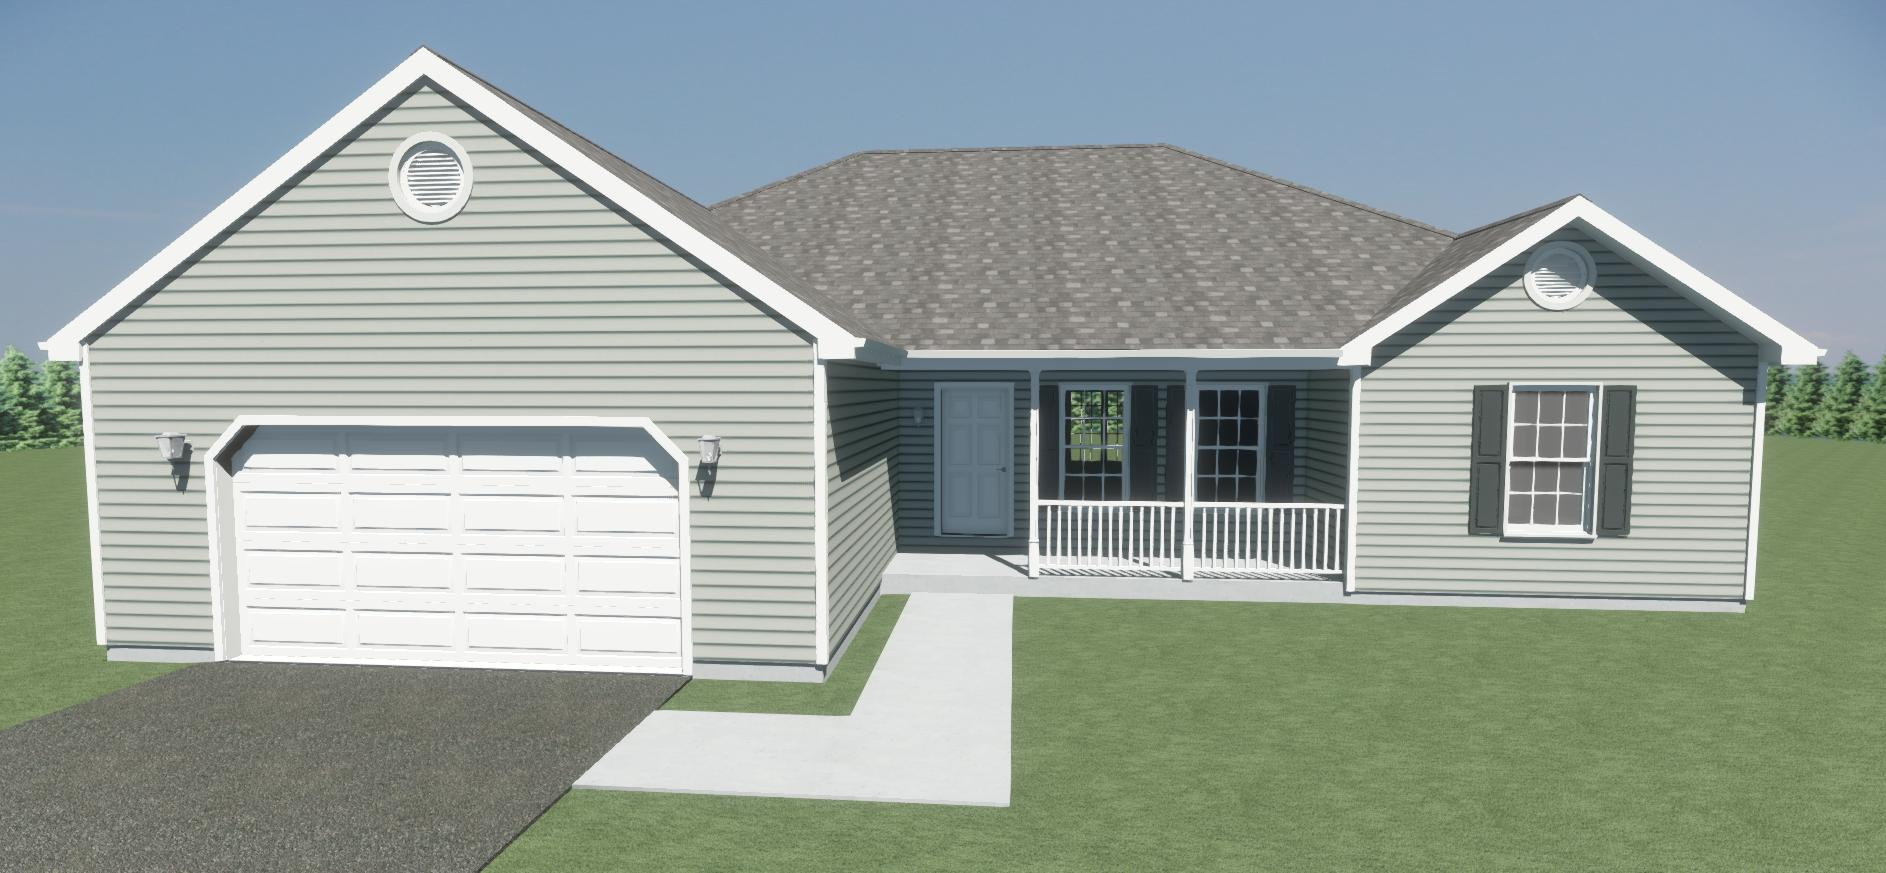 Rancher Yes - 3 Rooms - 2 Bathrooms -